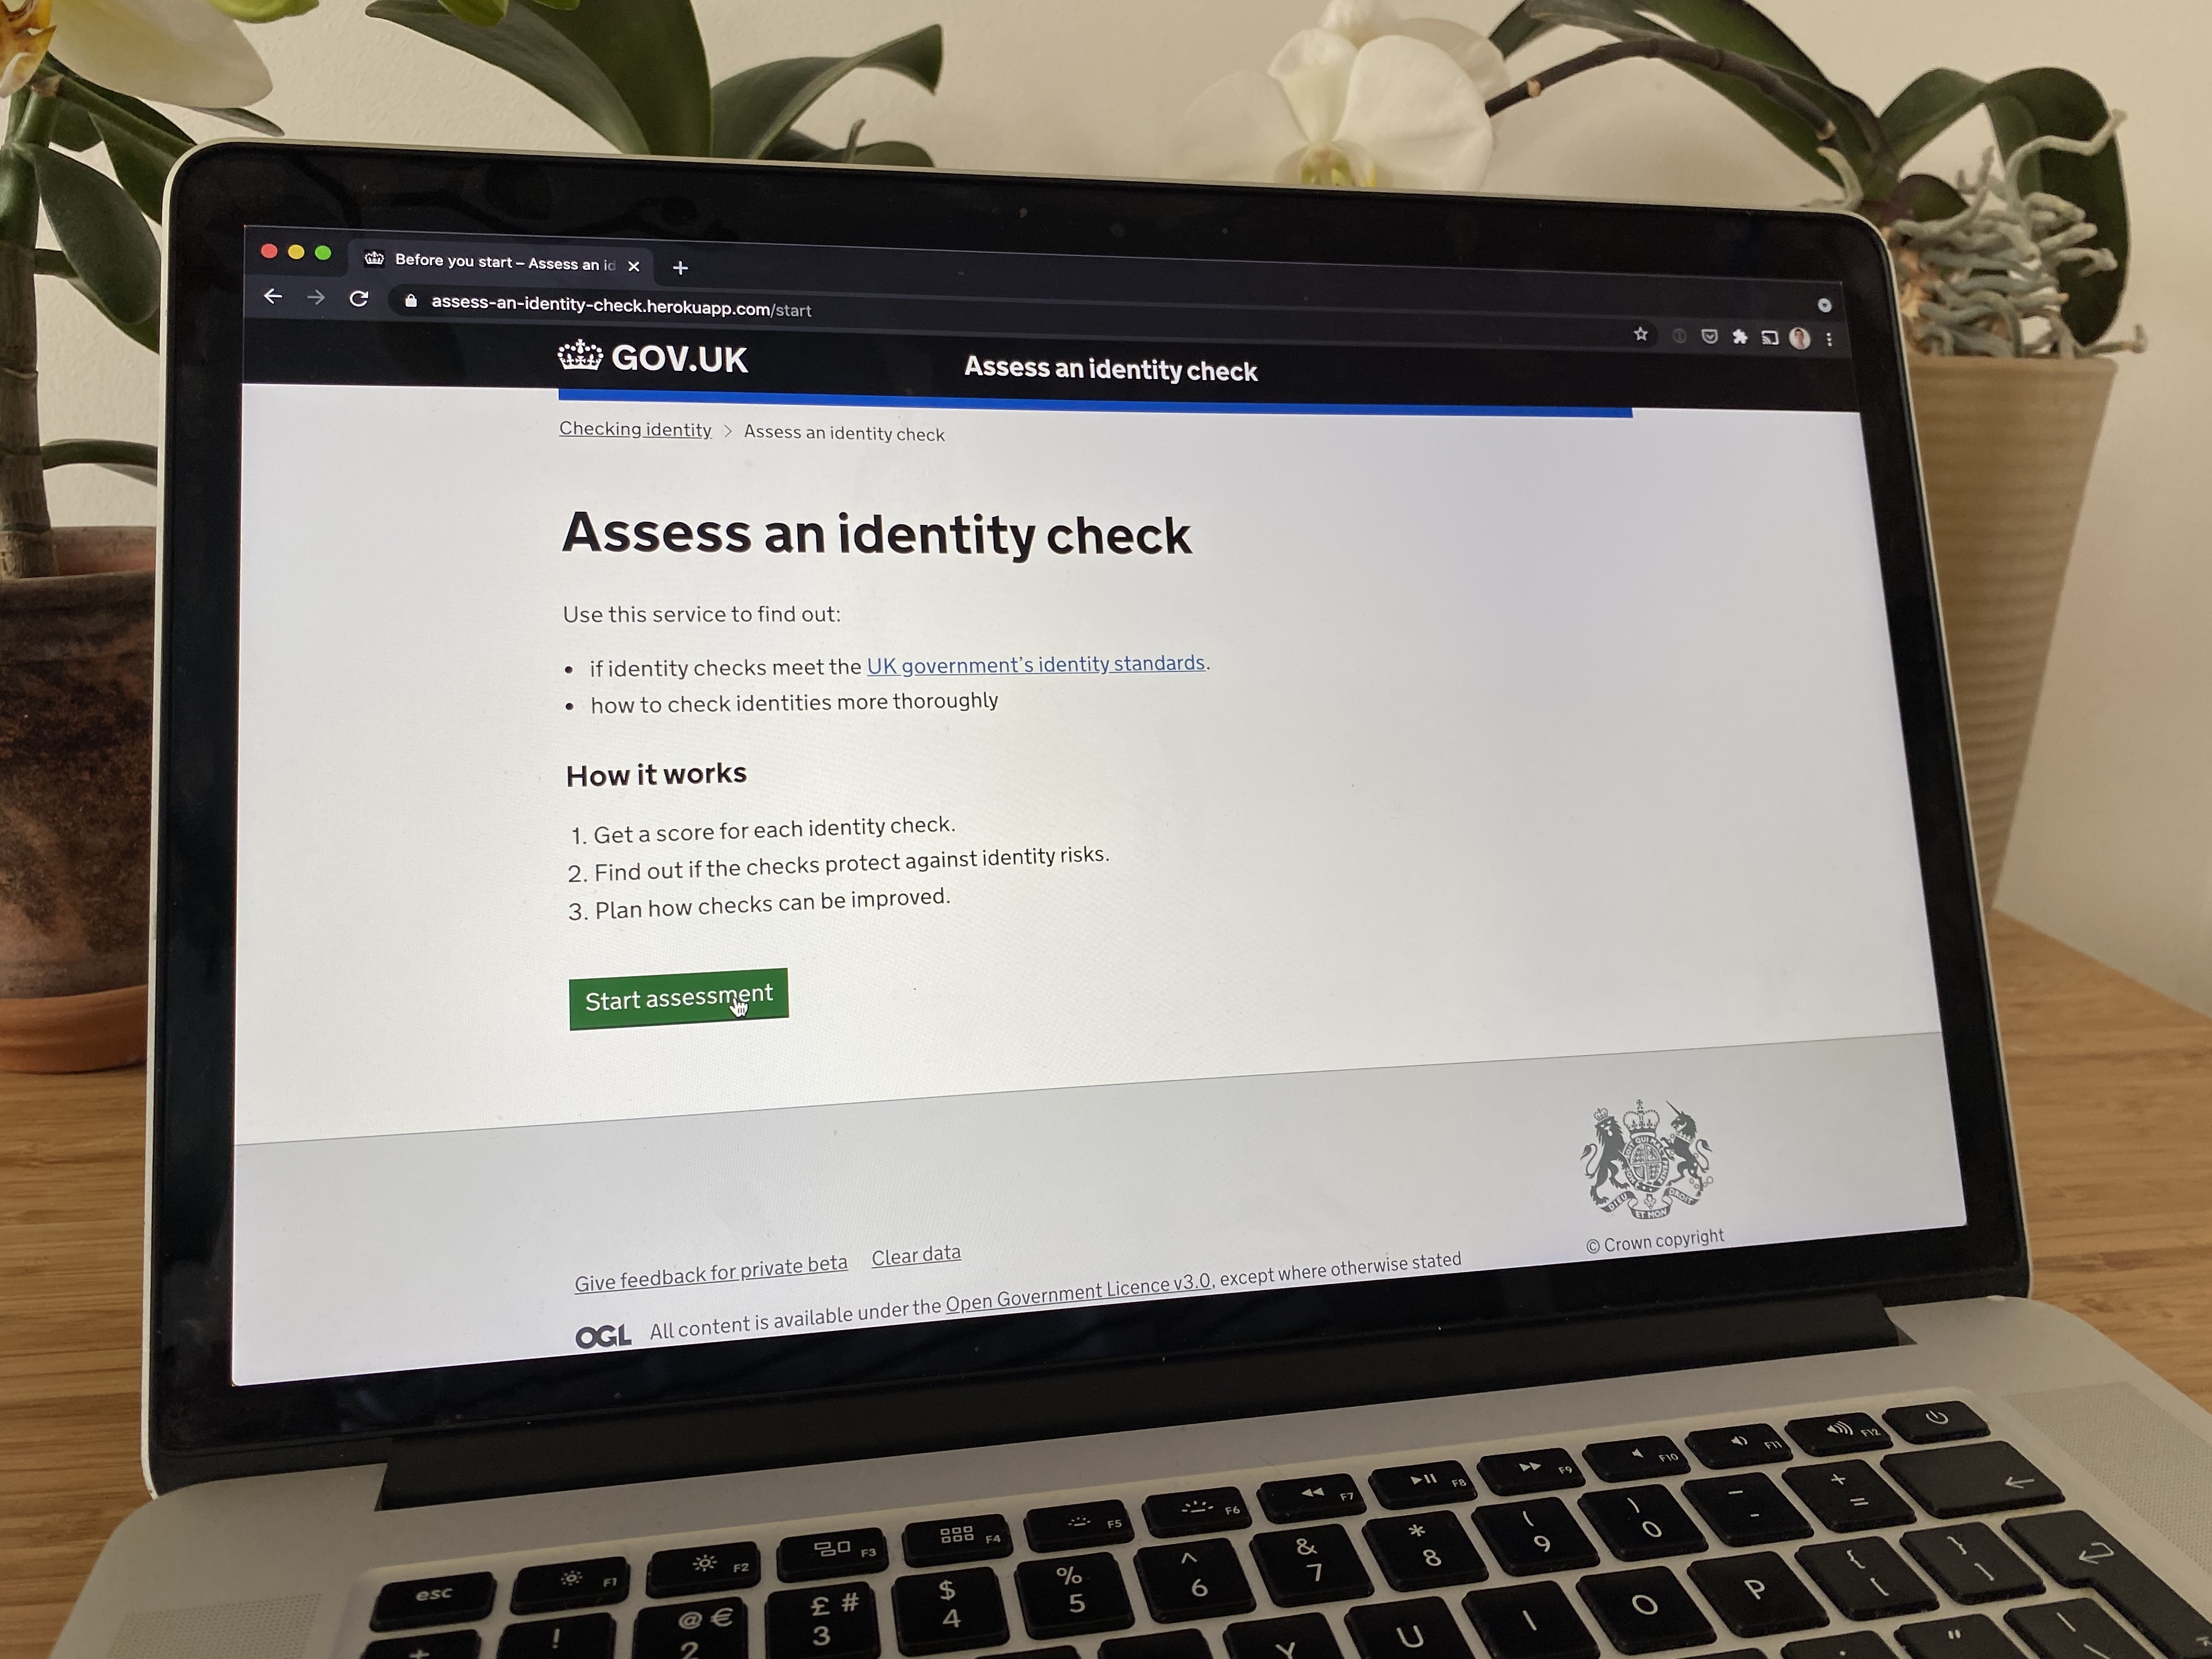 The start page for the identity check assessment tool